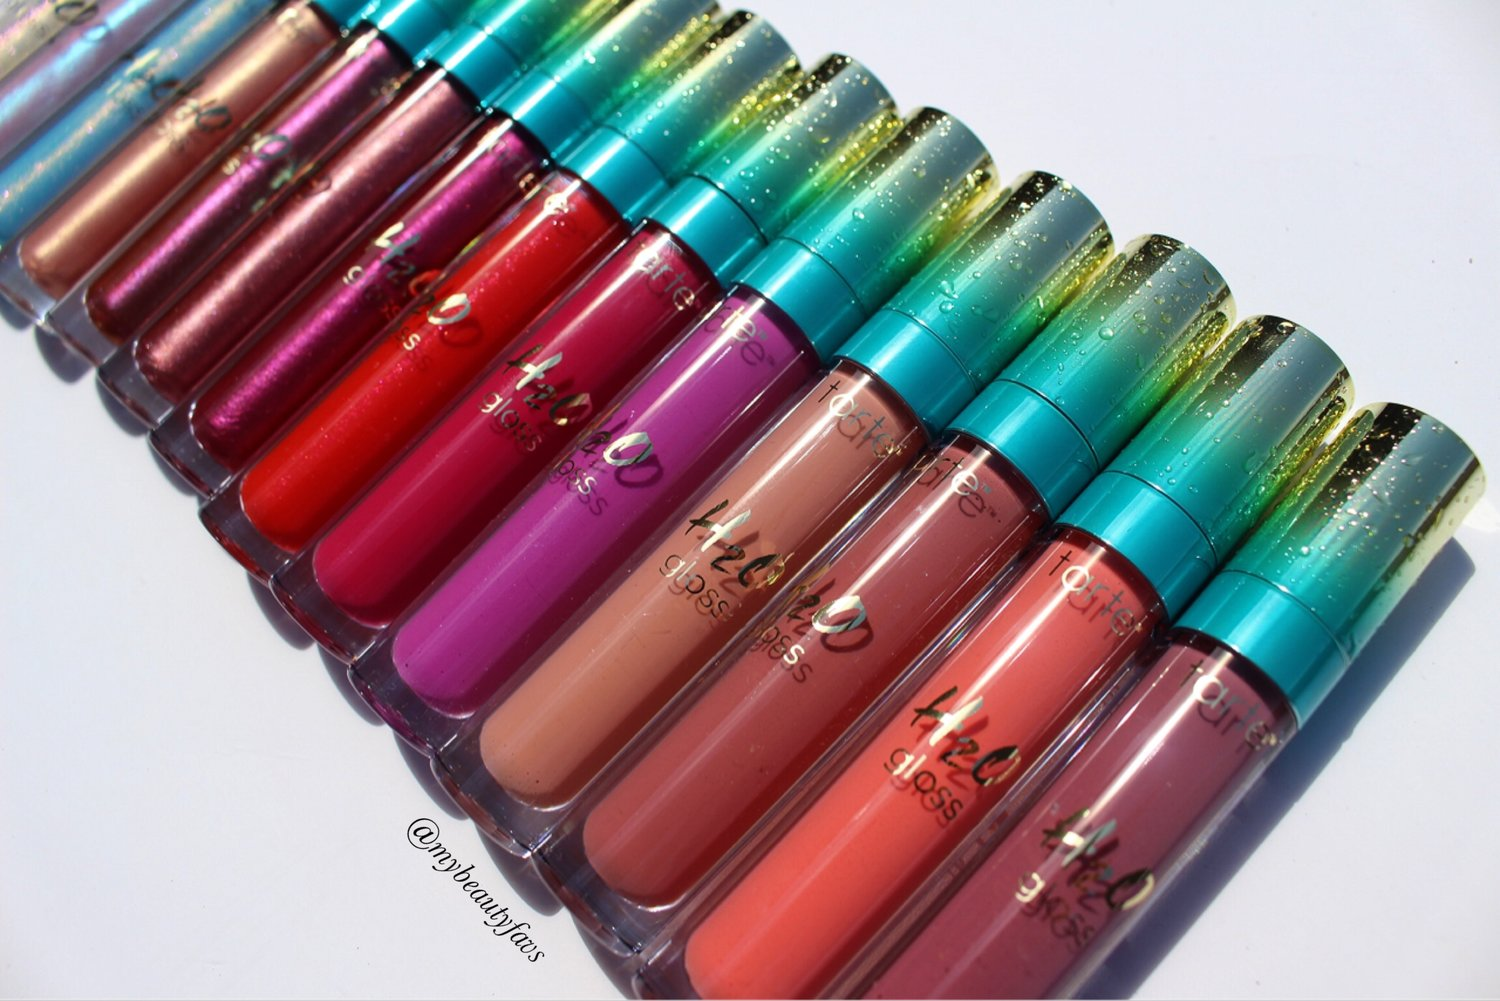 027cfaeb036 Tarte H2O Lip Gloss - Rainforest of the Sea Collection  Swatches of the  Entire Collection